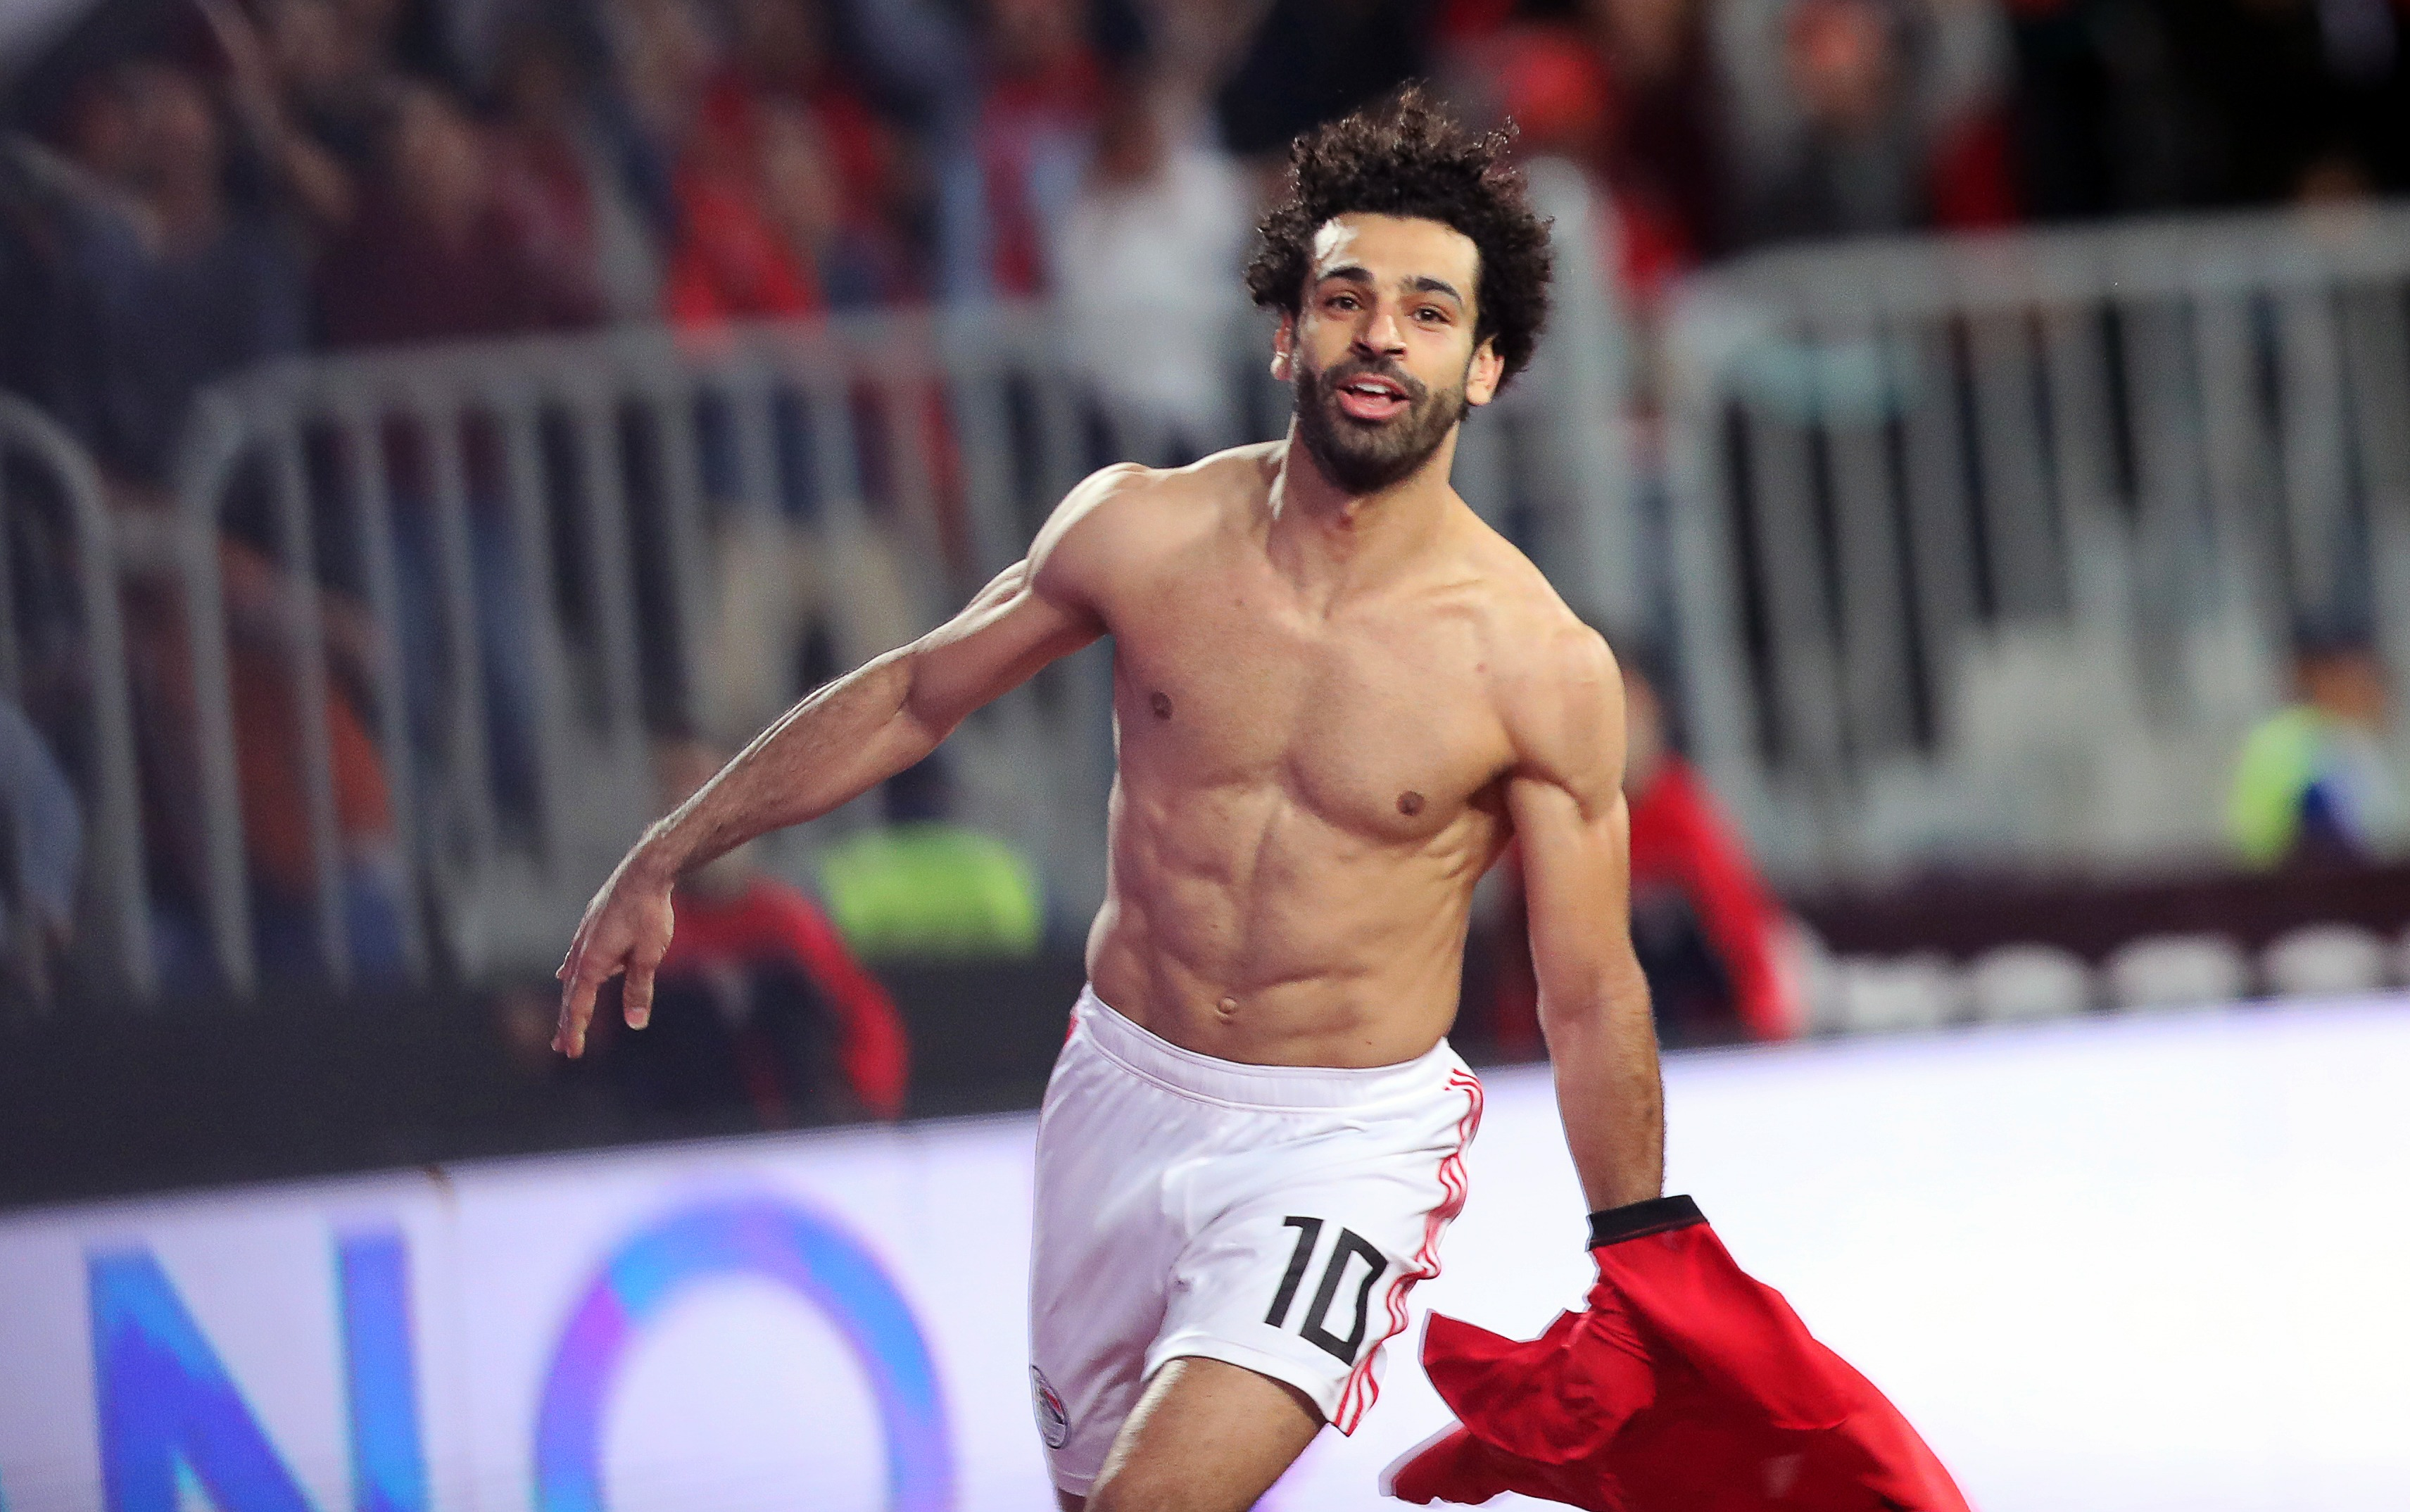 Egypt's Mohamed Salah celebrates after scoring a goal